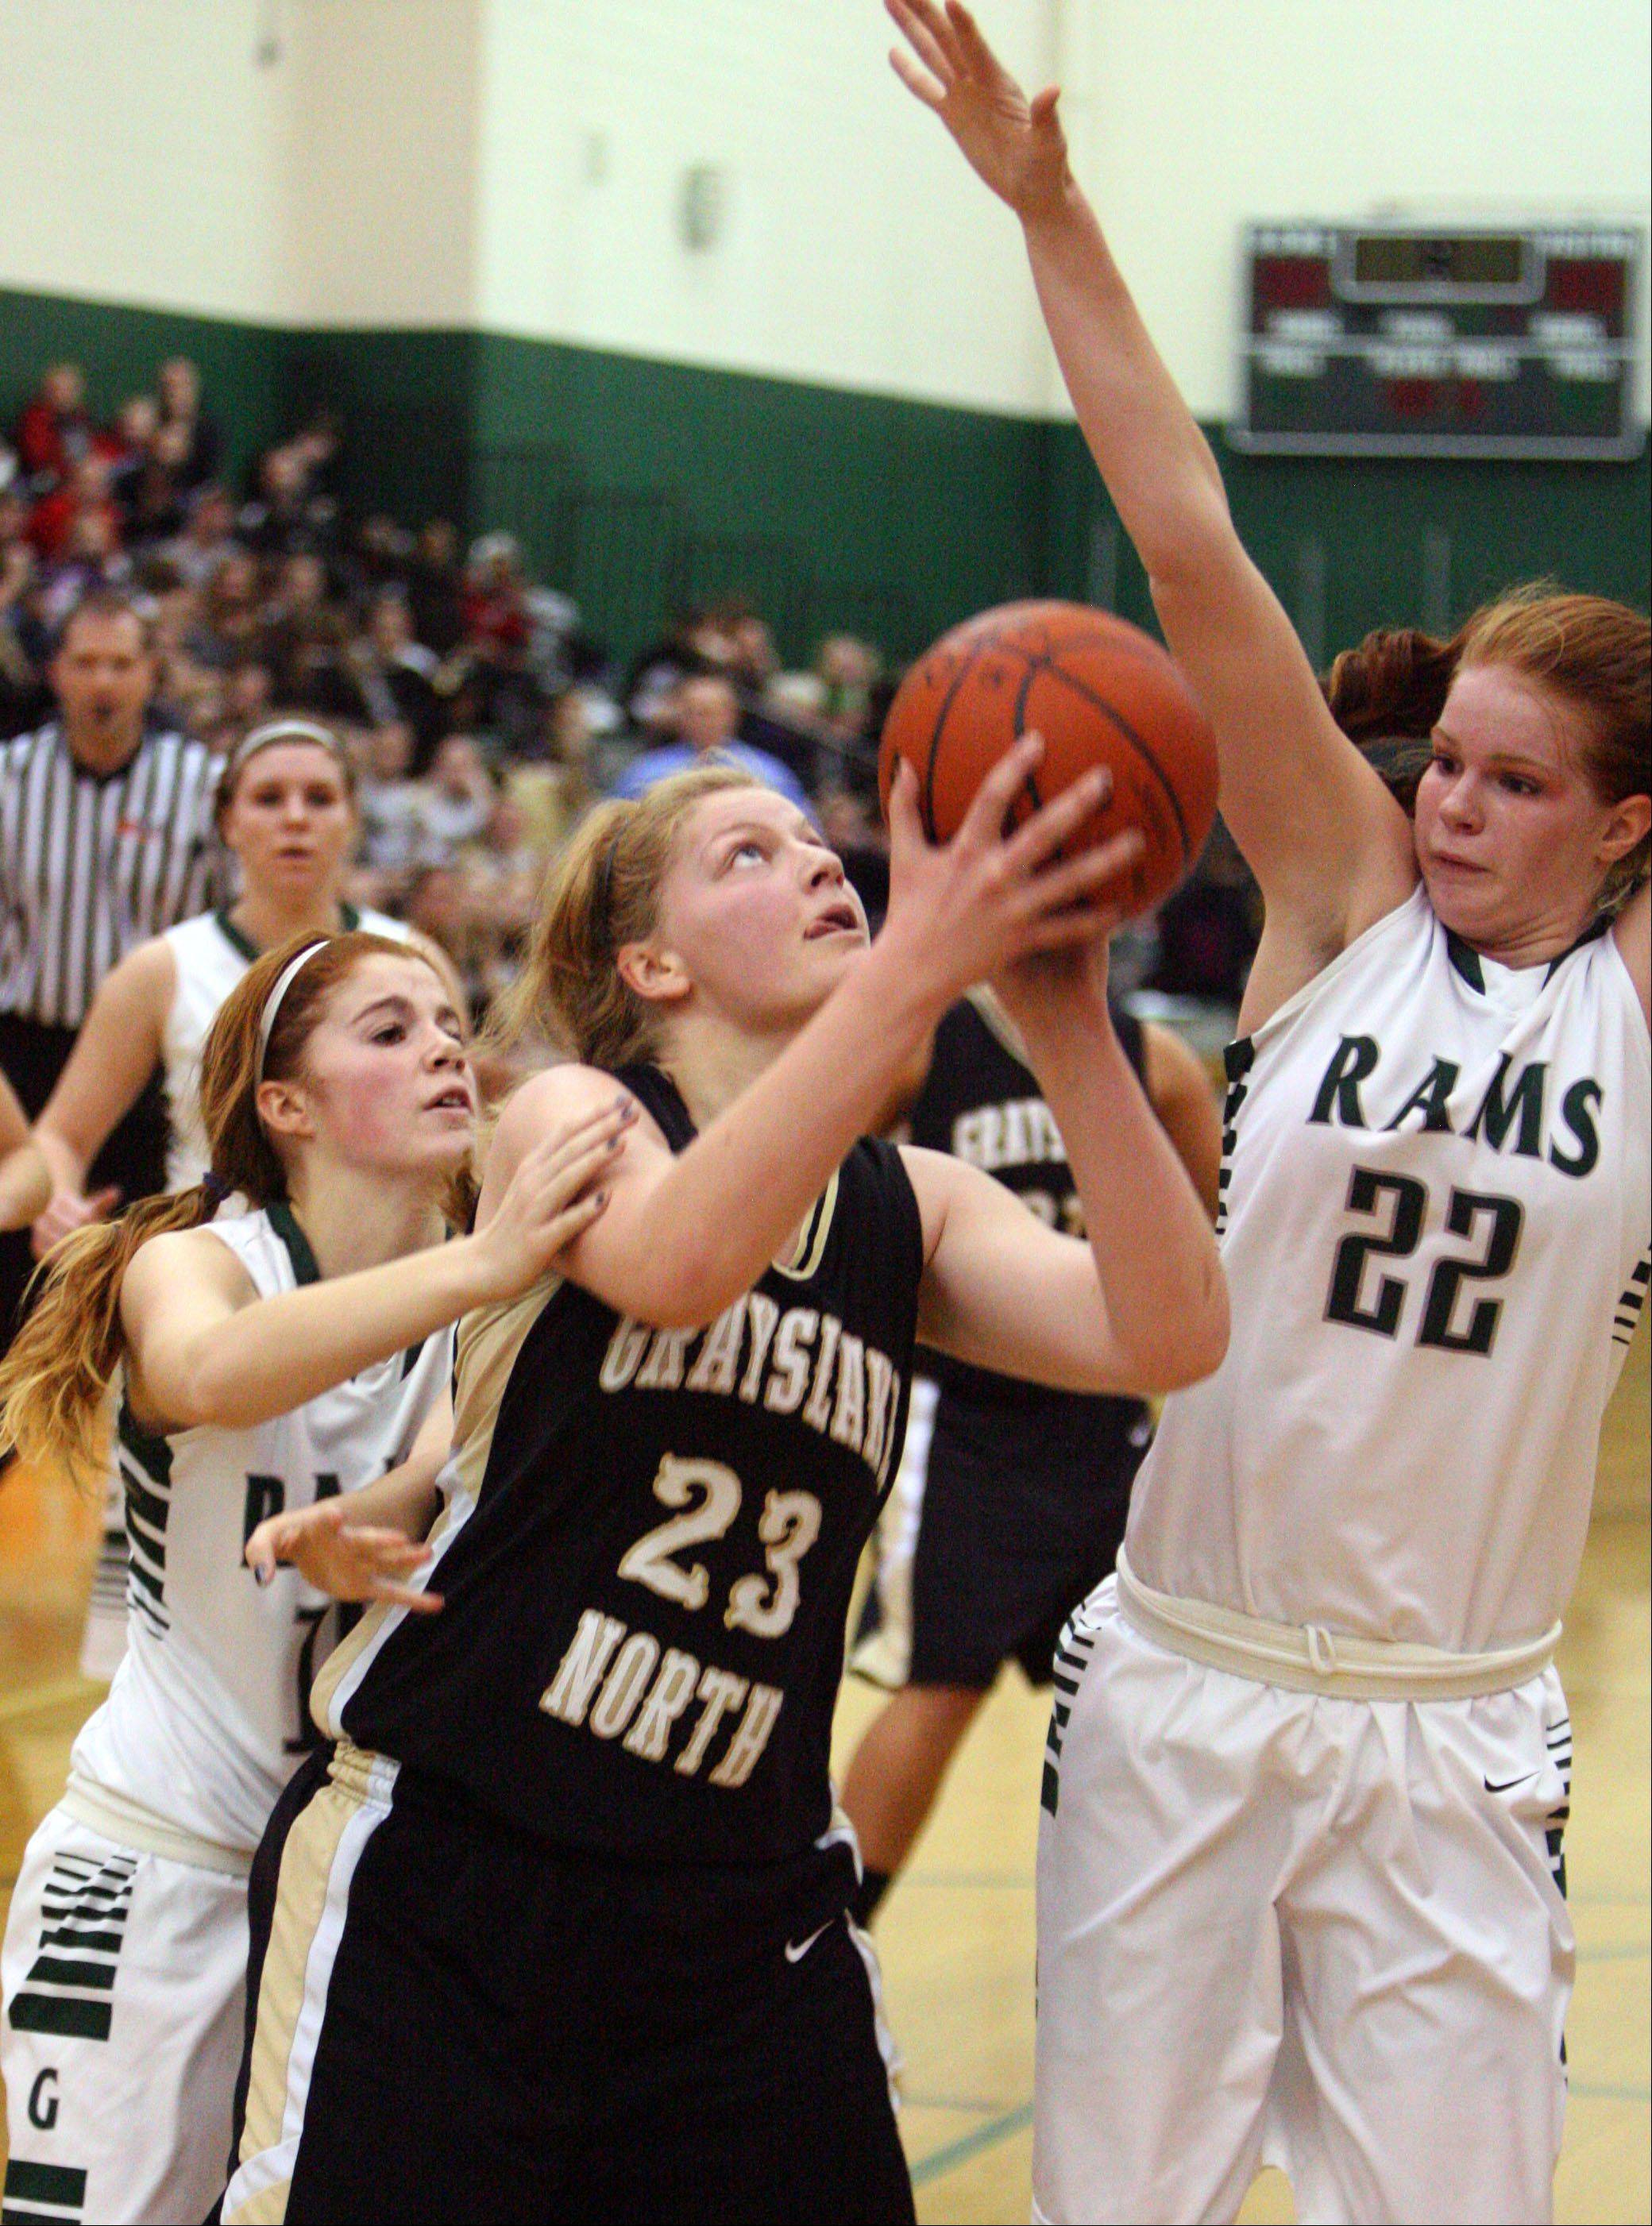 Grayslake North's Joanna Guhl, center, drives past Grayslake Central's Lauren Spaulding, left, and Morgan Dahlstrom .